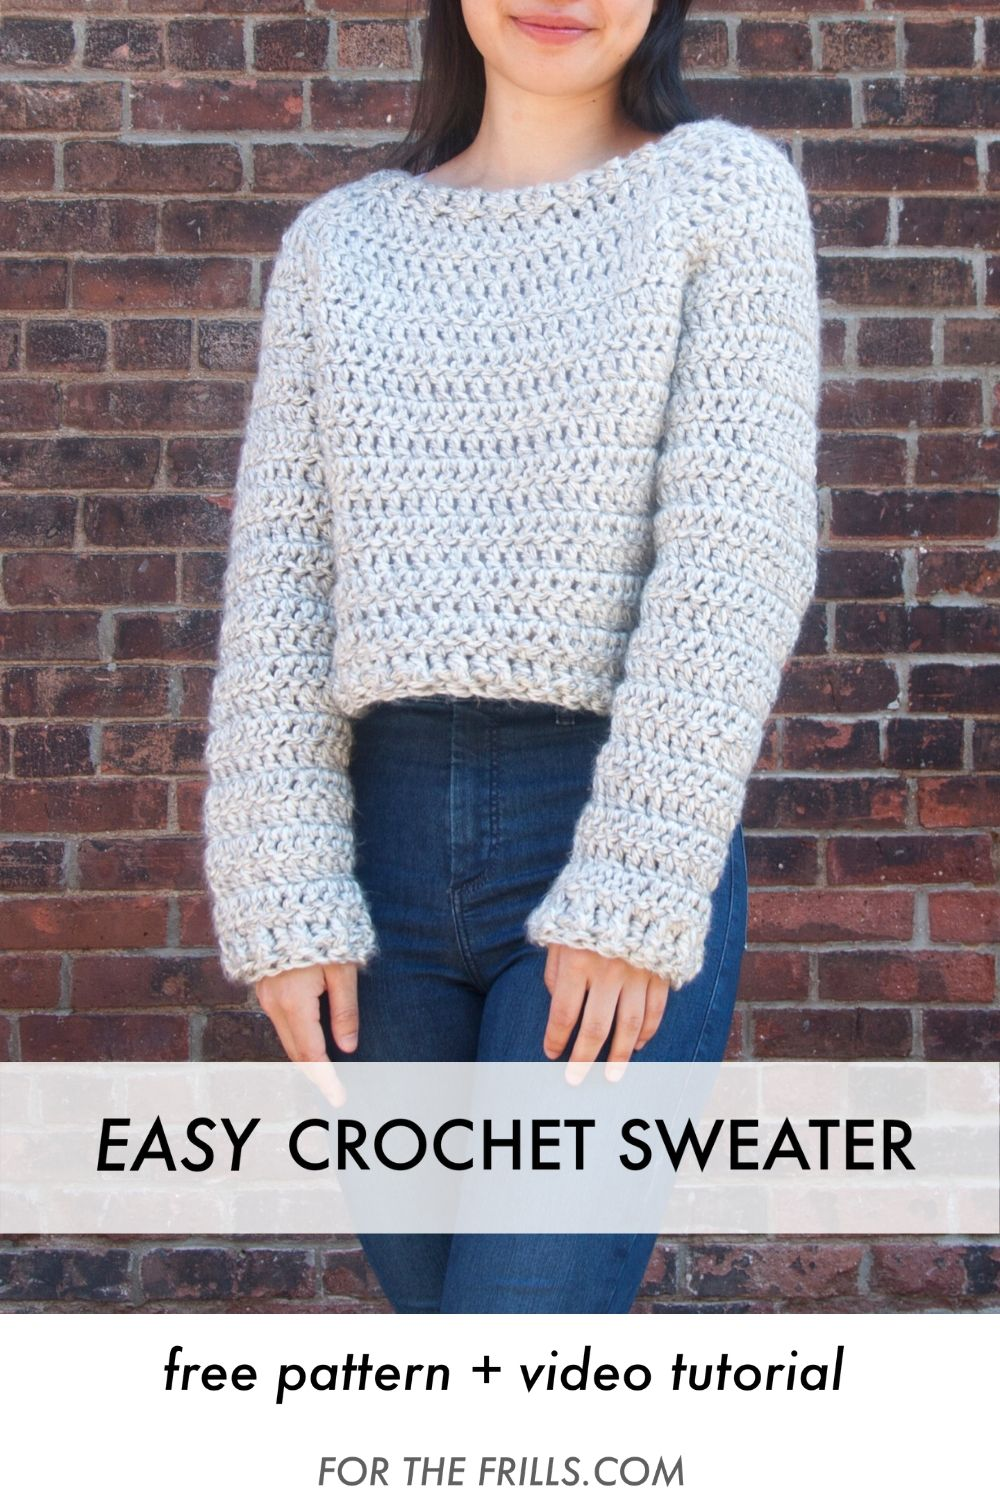 Quick Chunky Crochet Sweater Free Pattern Video For The Frills